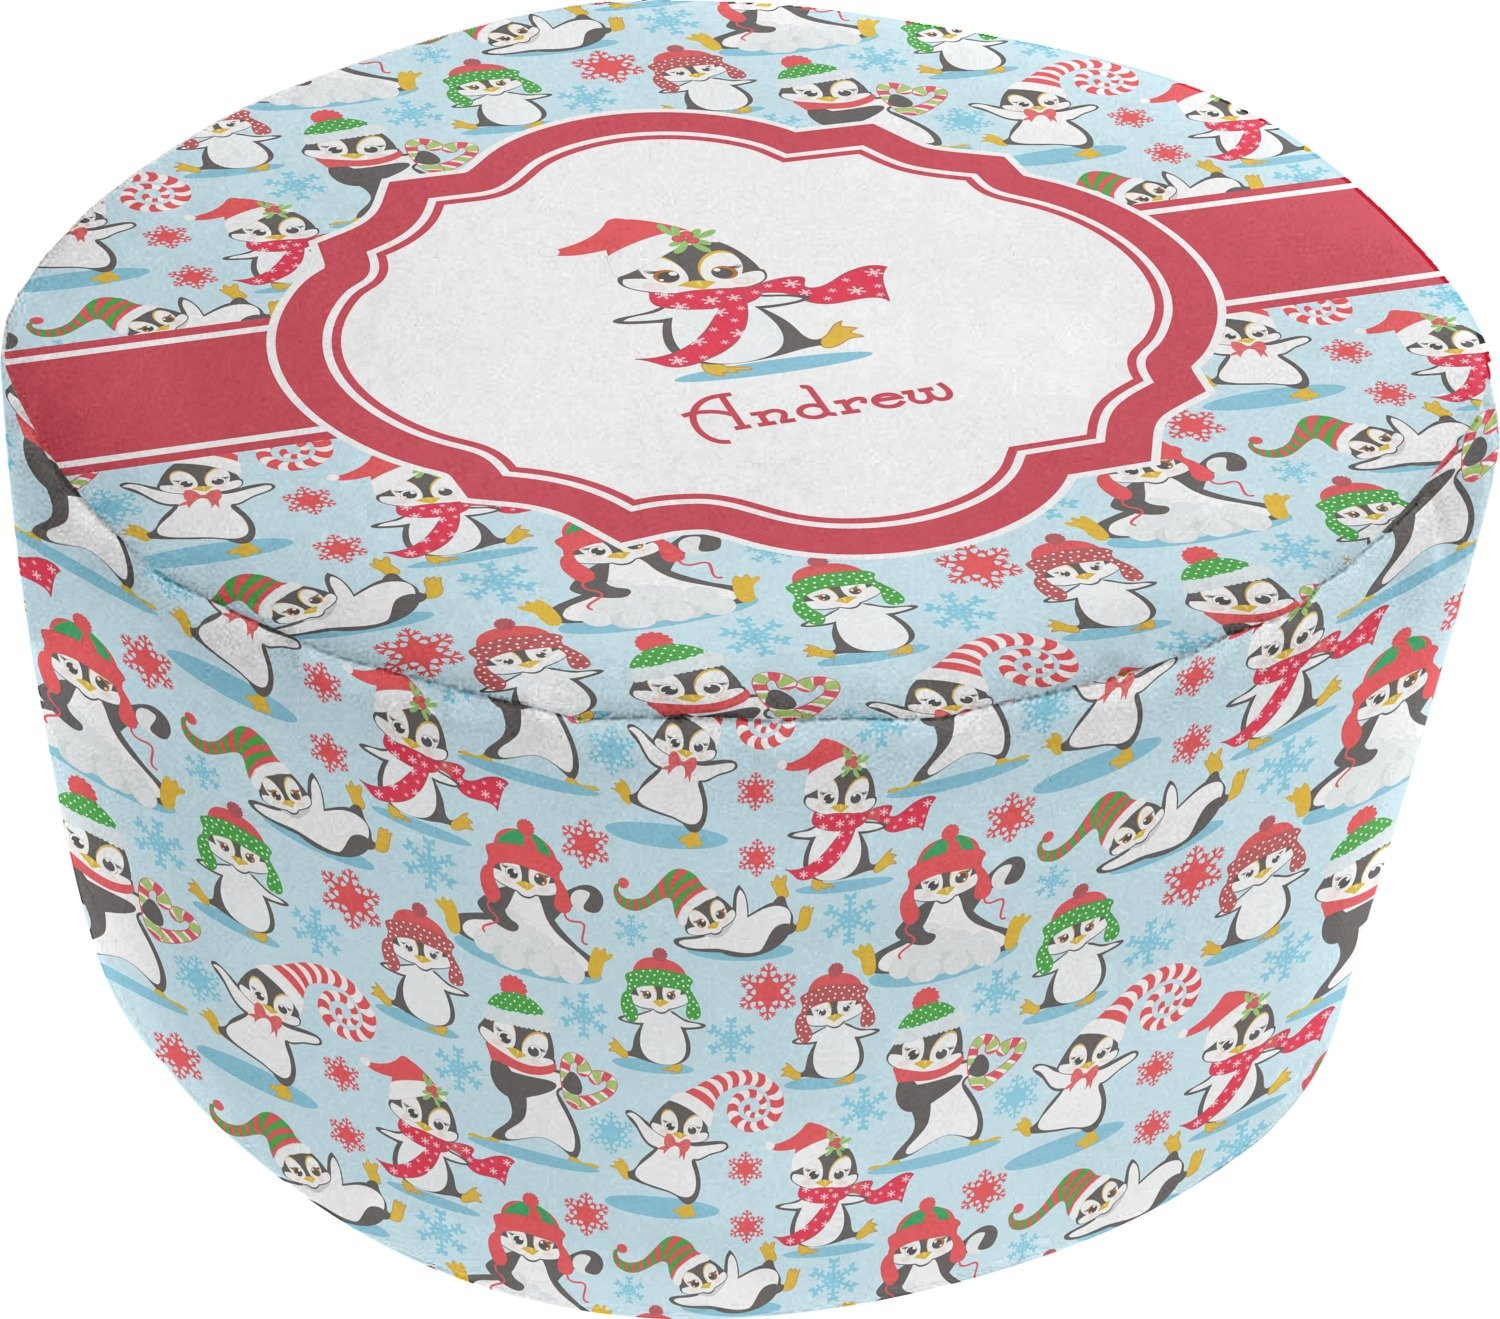 Christmas Penguins Round Pouf Ottoman (Personalized)